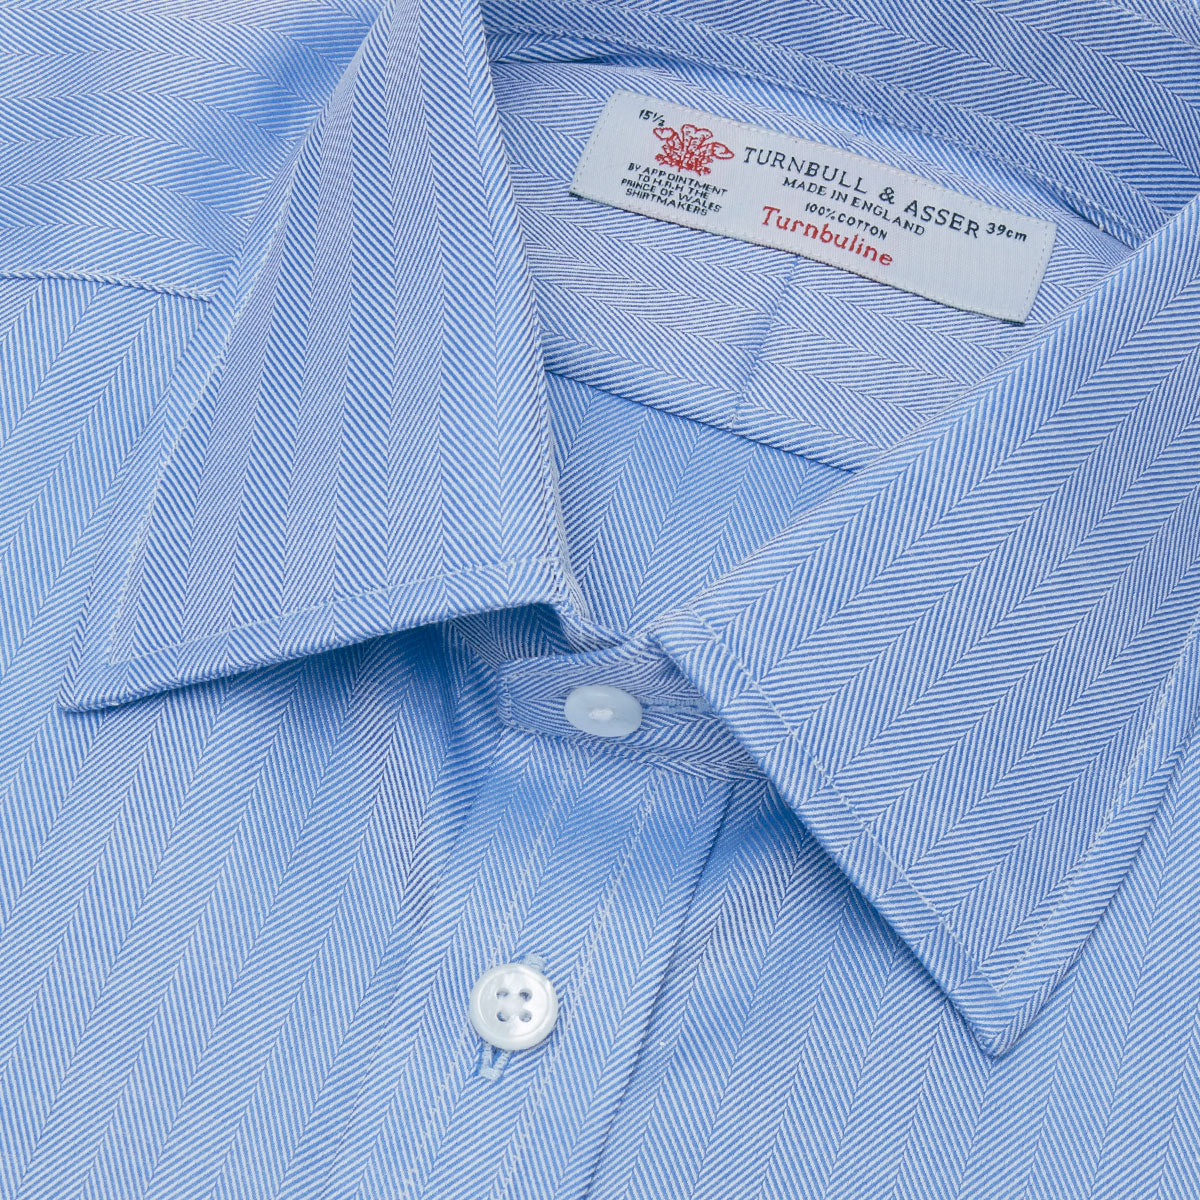 Blue Herringbone Superfine Cotton Shirt with T&A Collar and 3-Button Cuffs